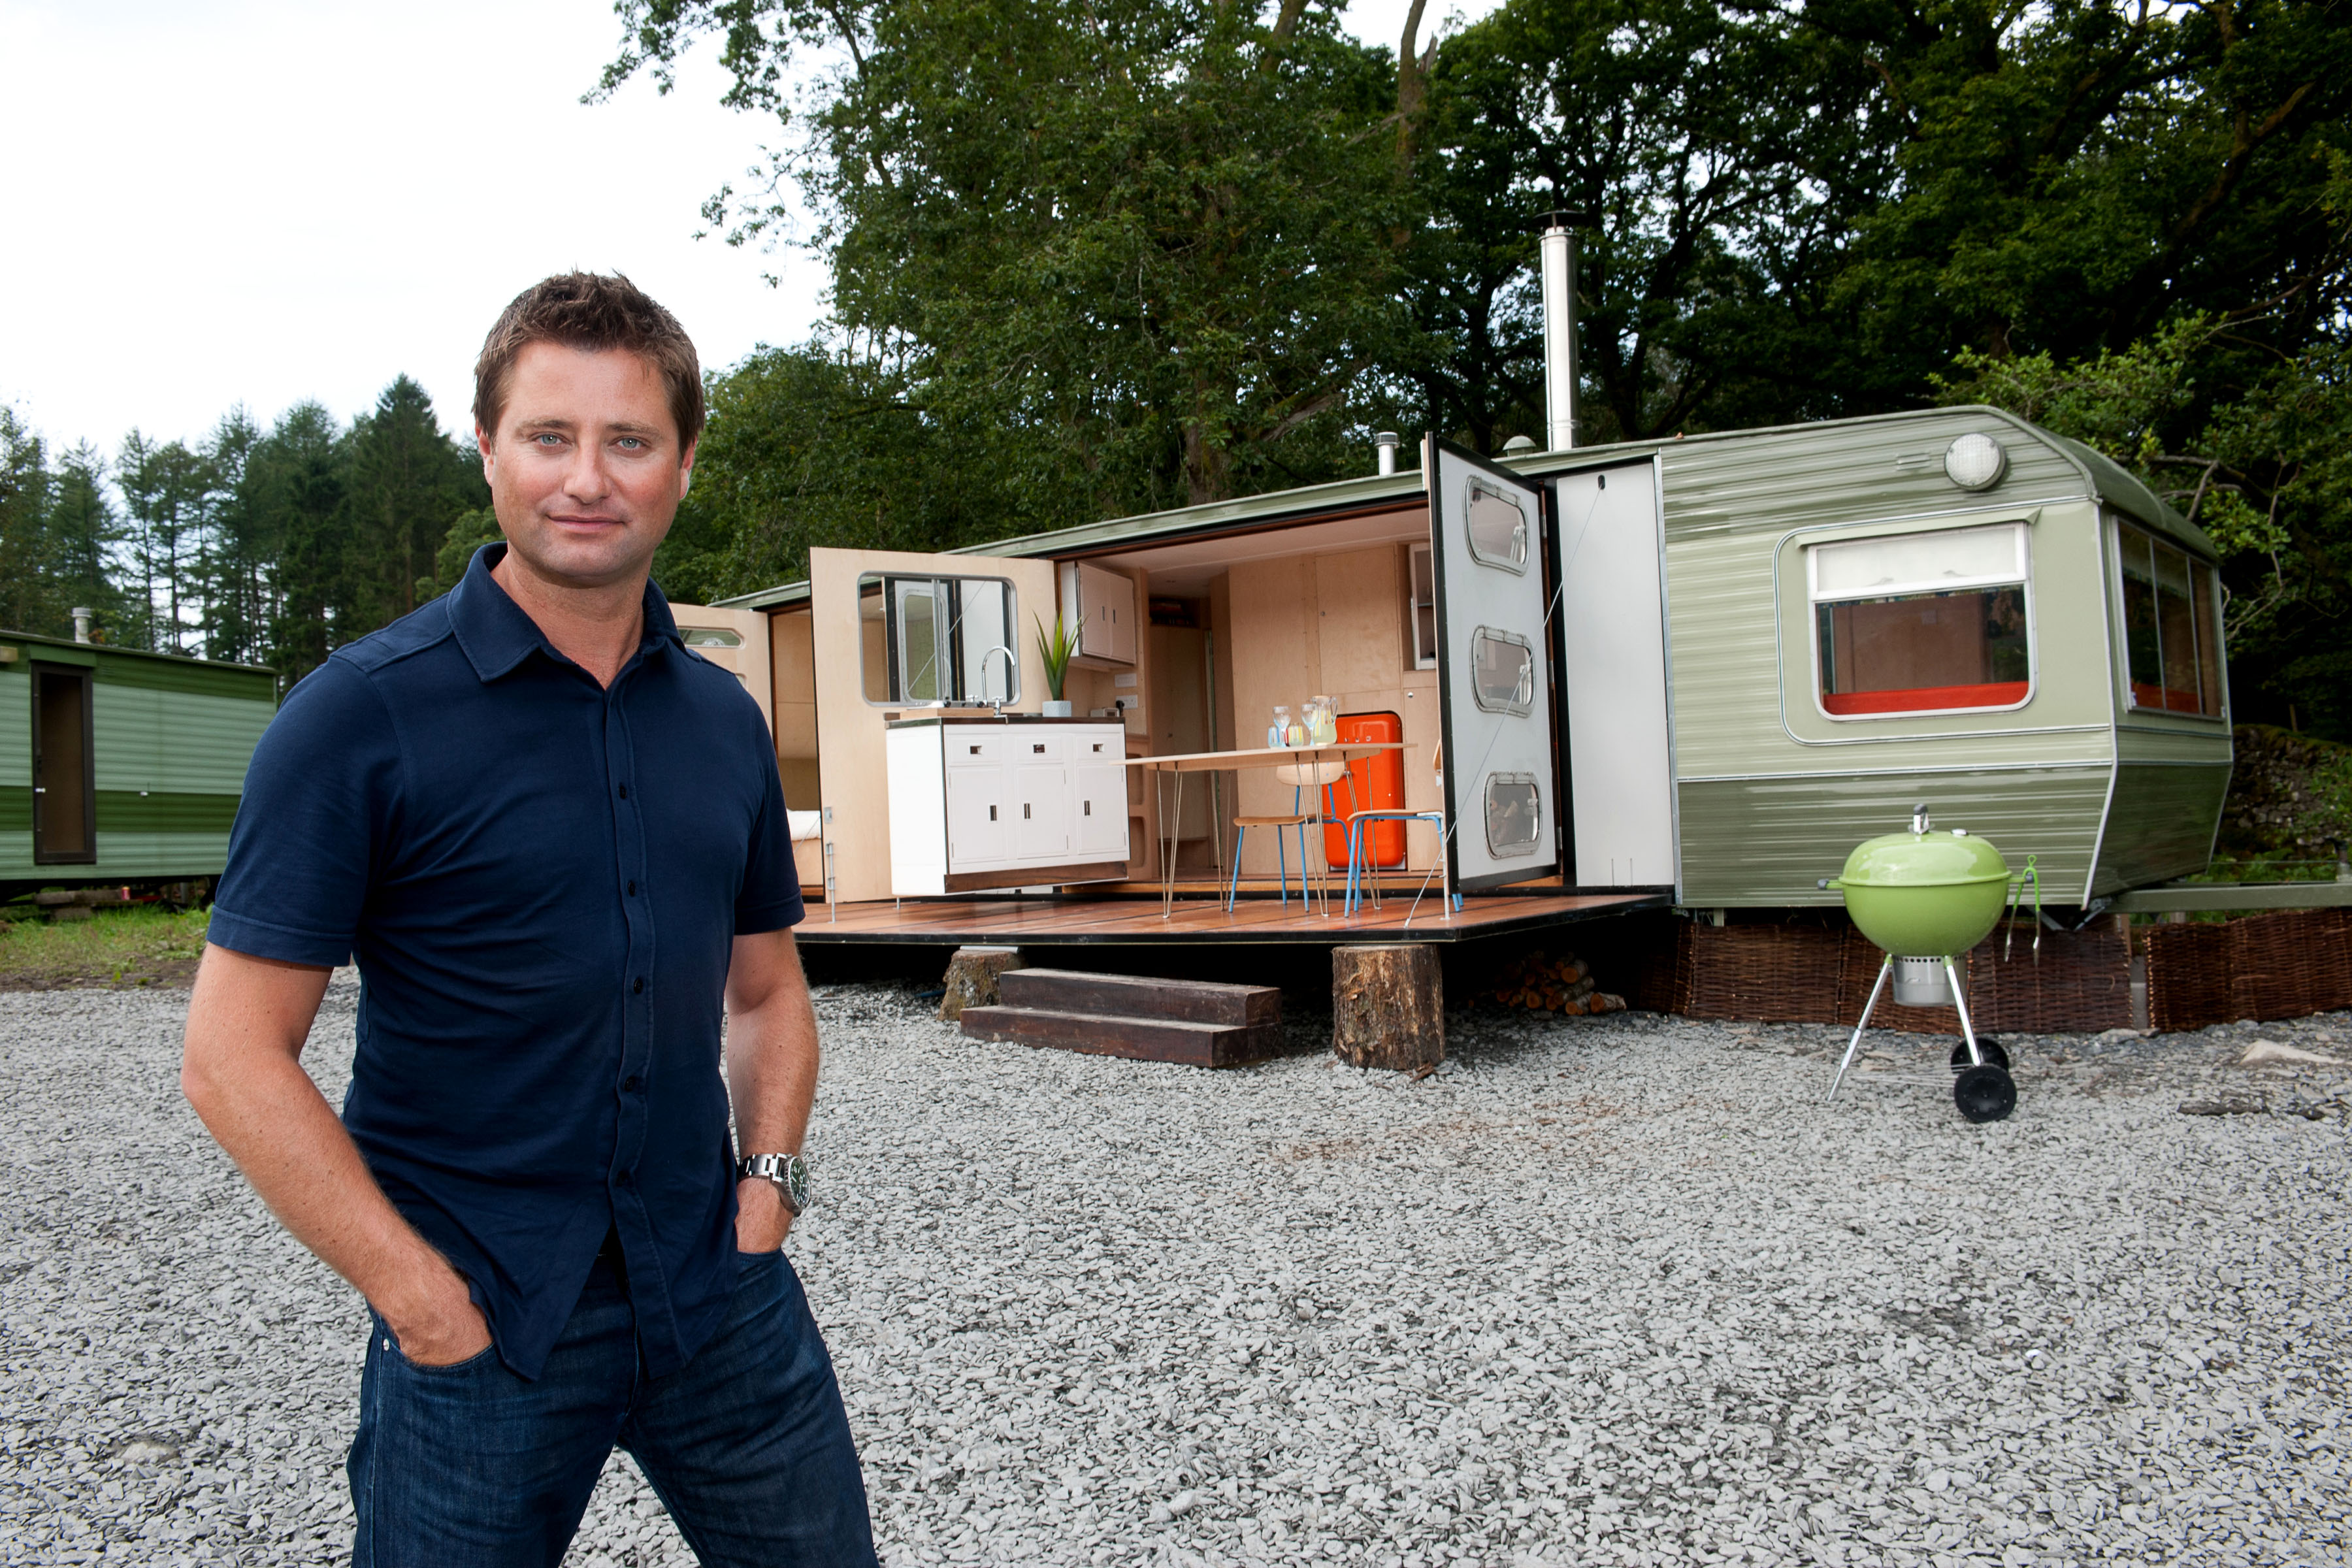 George Clarke shows off his Amazing Spaces - may include sheds